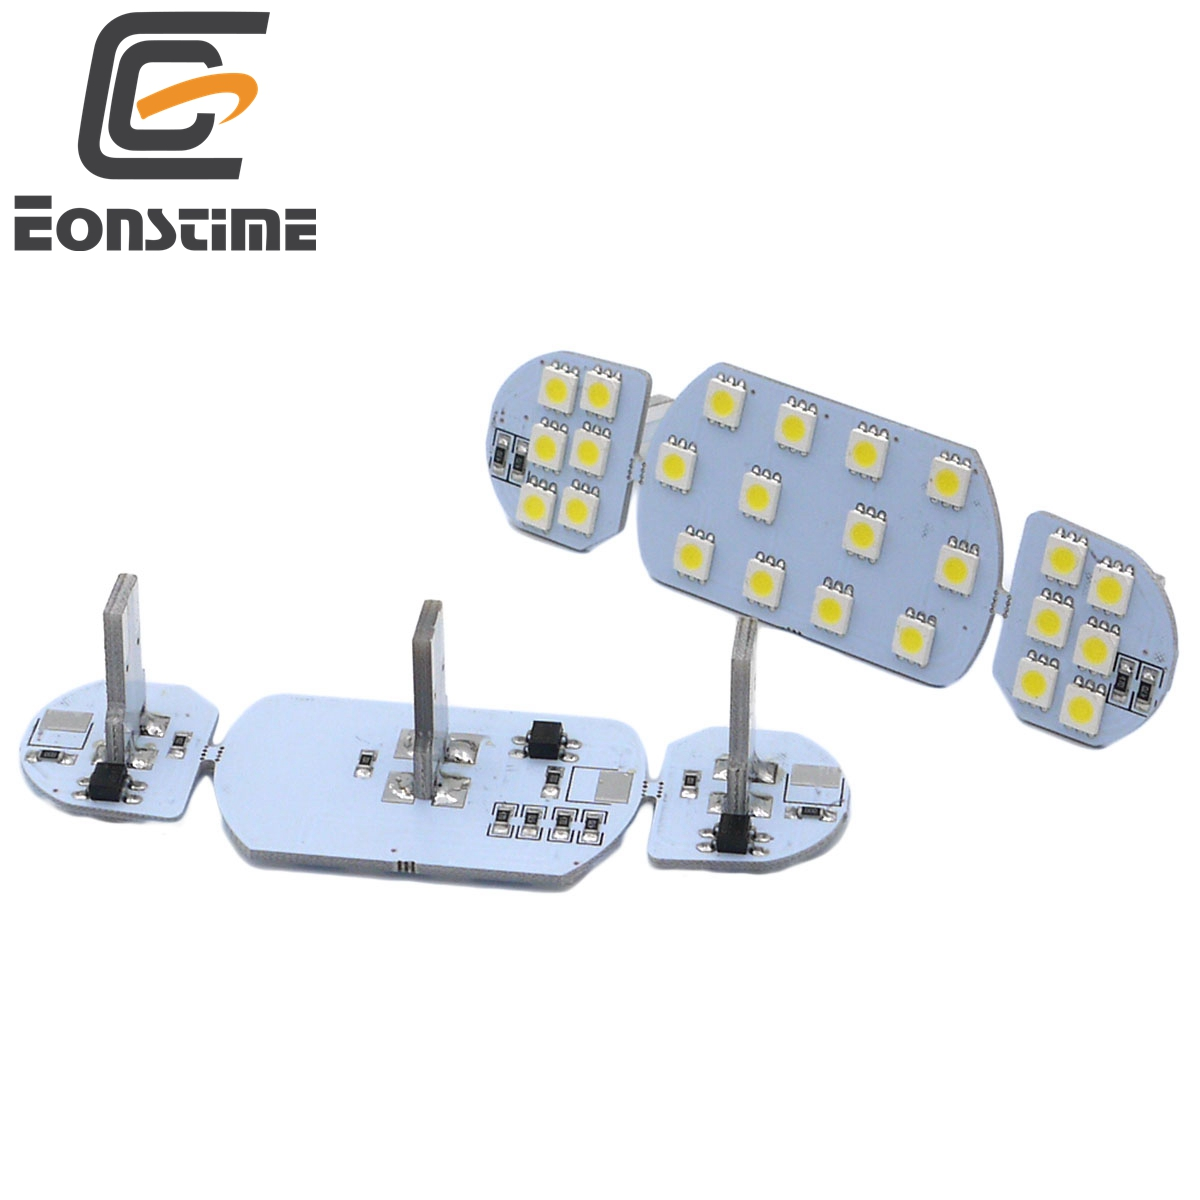 Eonstime 12V 6pcs/set Car Auto Led Interior Dome Reading Light Lamp for PEUGEOT 206 307 308 3008 408 508 CITROEN C5 peugeot 307 1 6 hdi